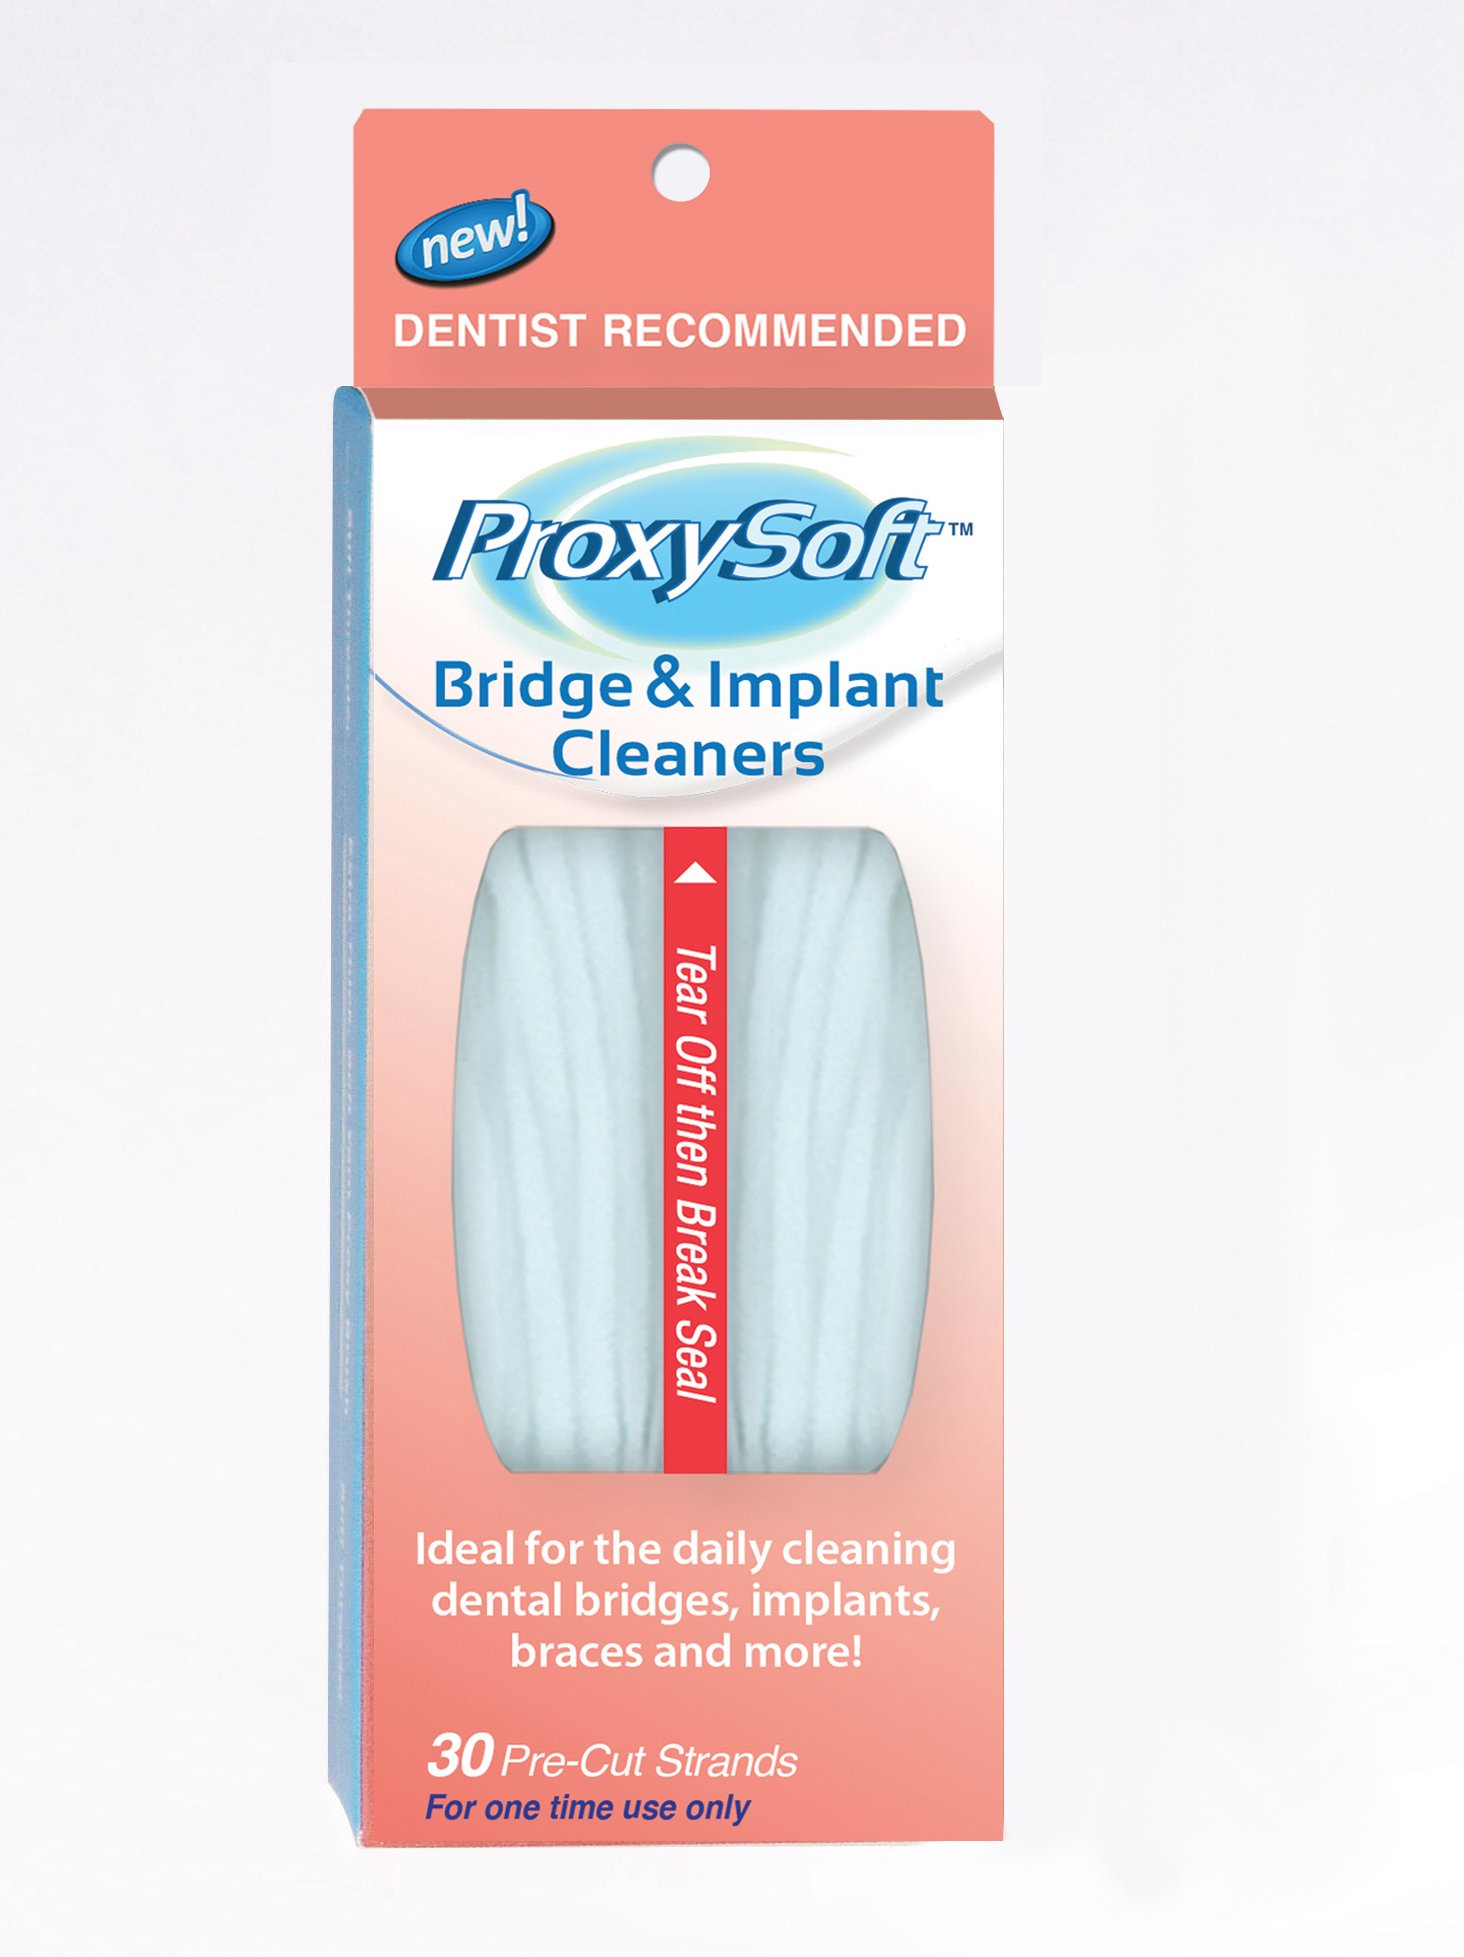 Dental Floss for Bridges and Implants, 12 Packs - Implant Floss Threaders for Bridges with Extra-Thick Proxy Brush for Optimal Dental Care - Bridge and Implant Cleaners by ProxySoft